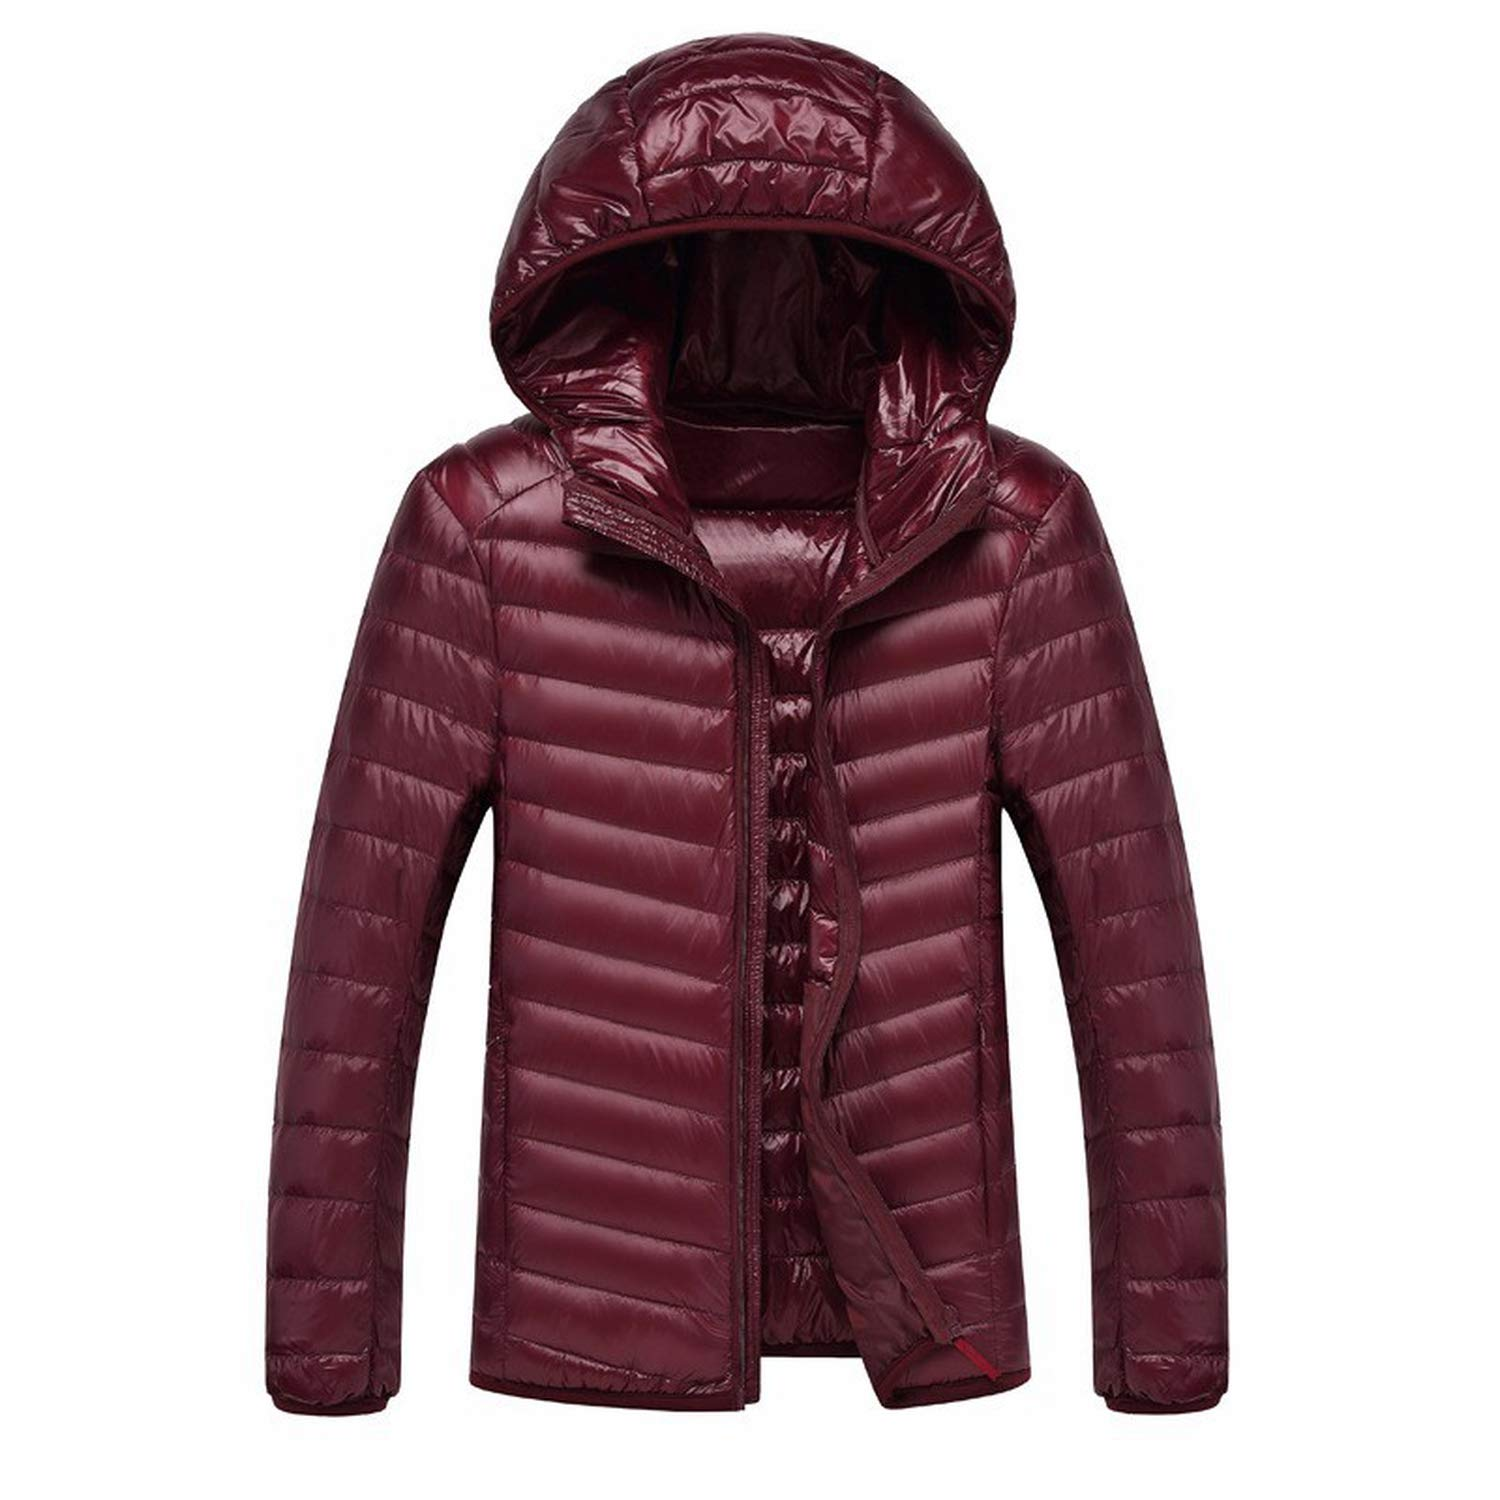 I'm good at you 2018 Men Hooded Ultralight White Duck Down Jacket Warm Jacket Portable Package Men Pack Jacket I' m good at you